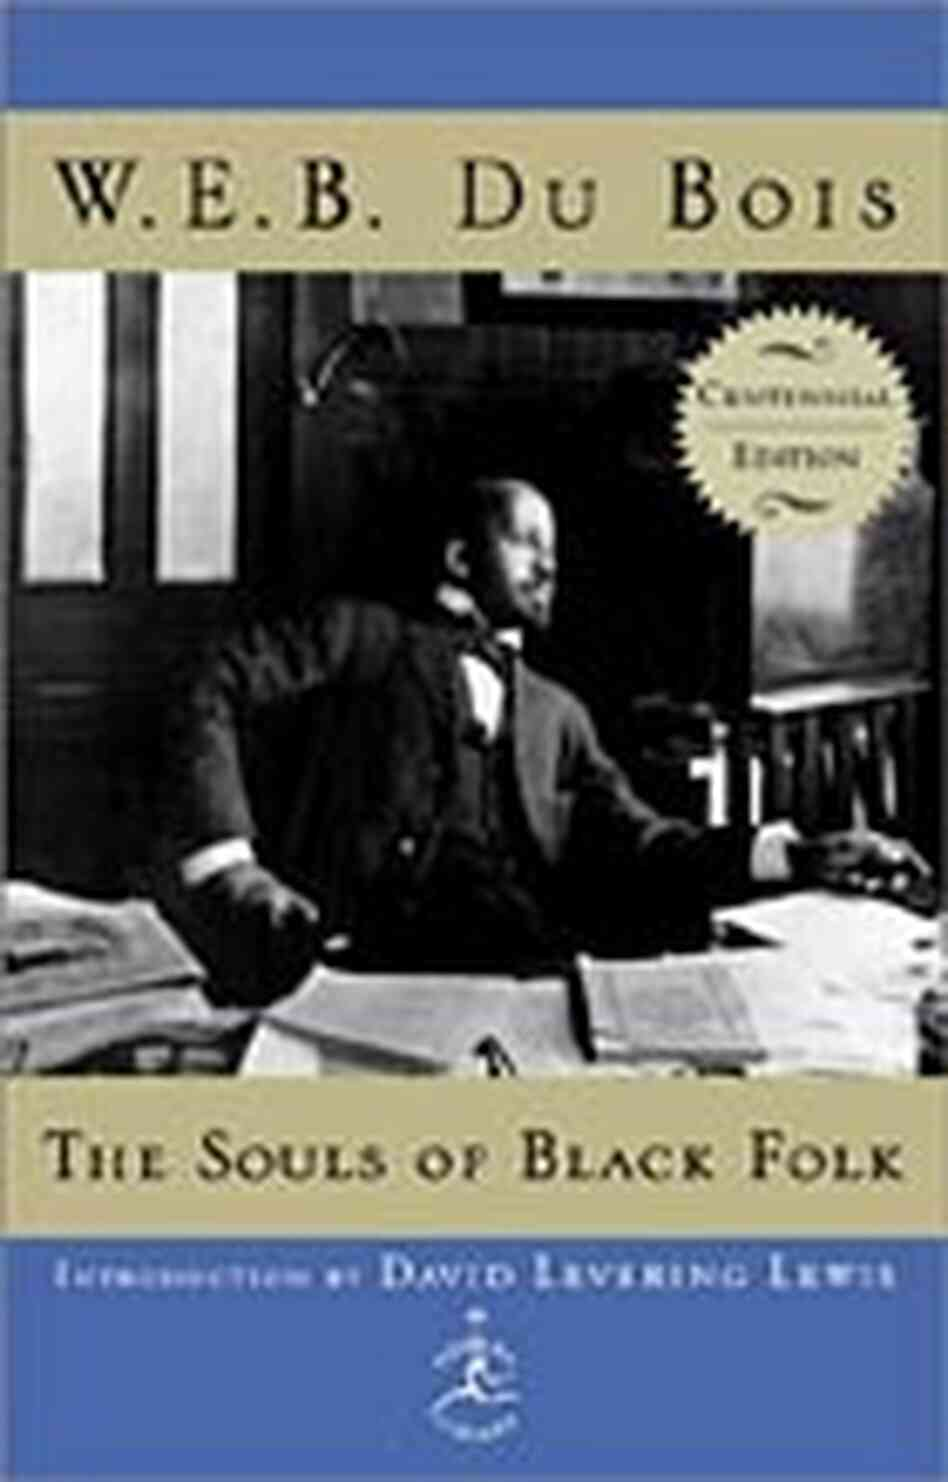 DuBois, W.E.B., The Souls of Black Folk: Sketches and Essays . Second ...